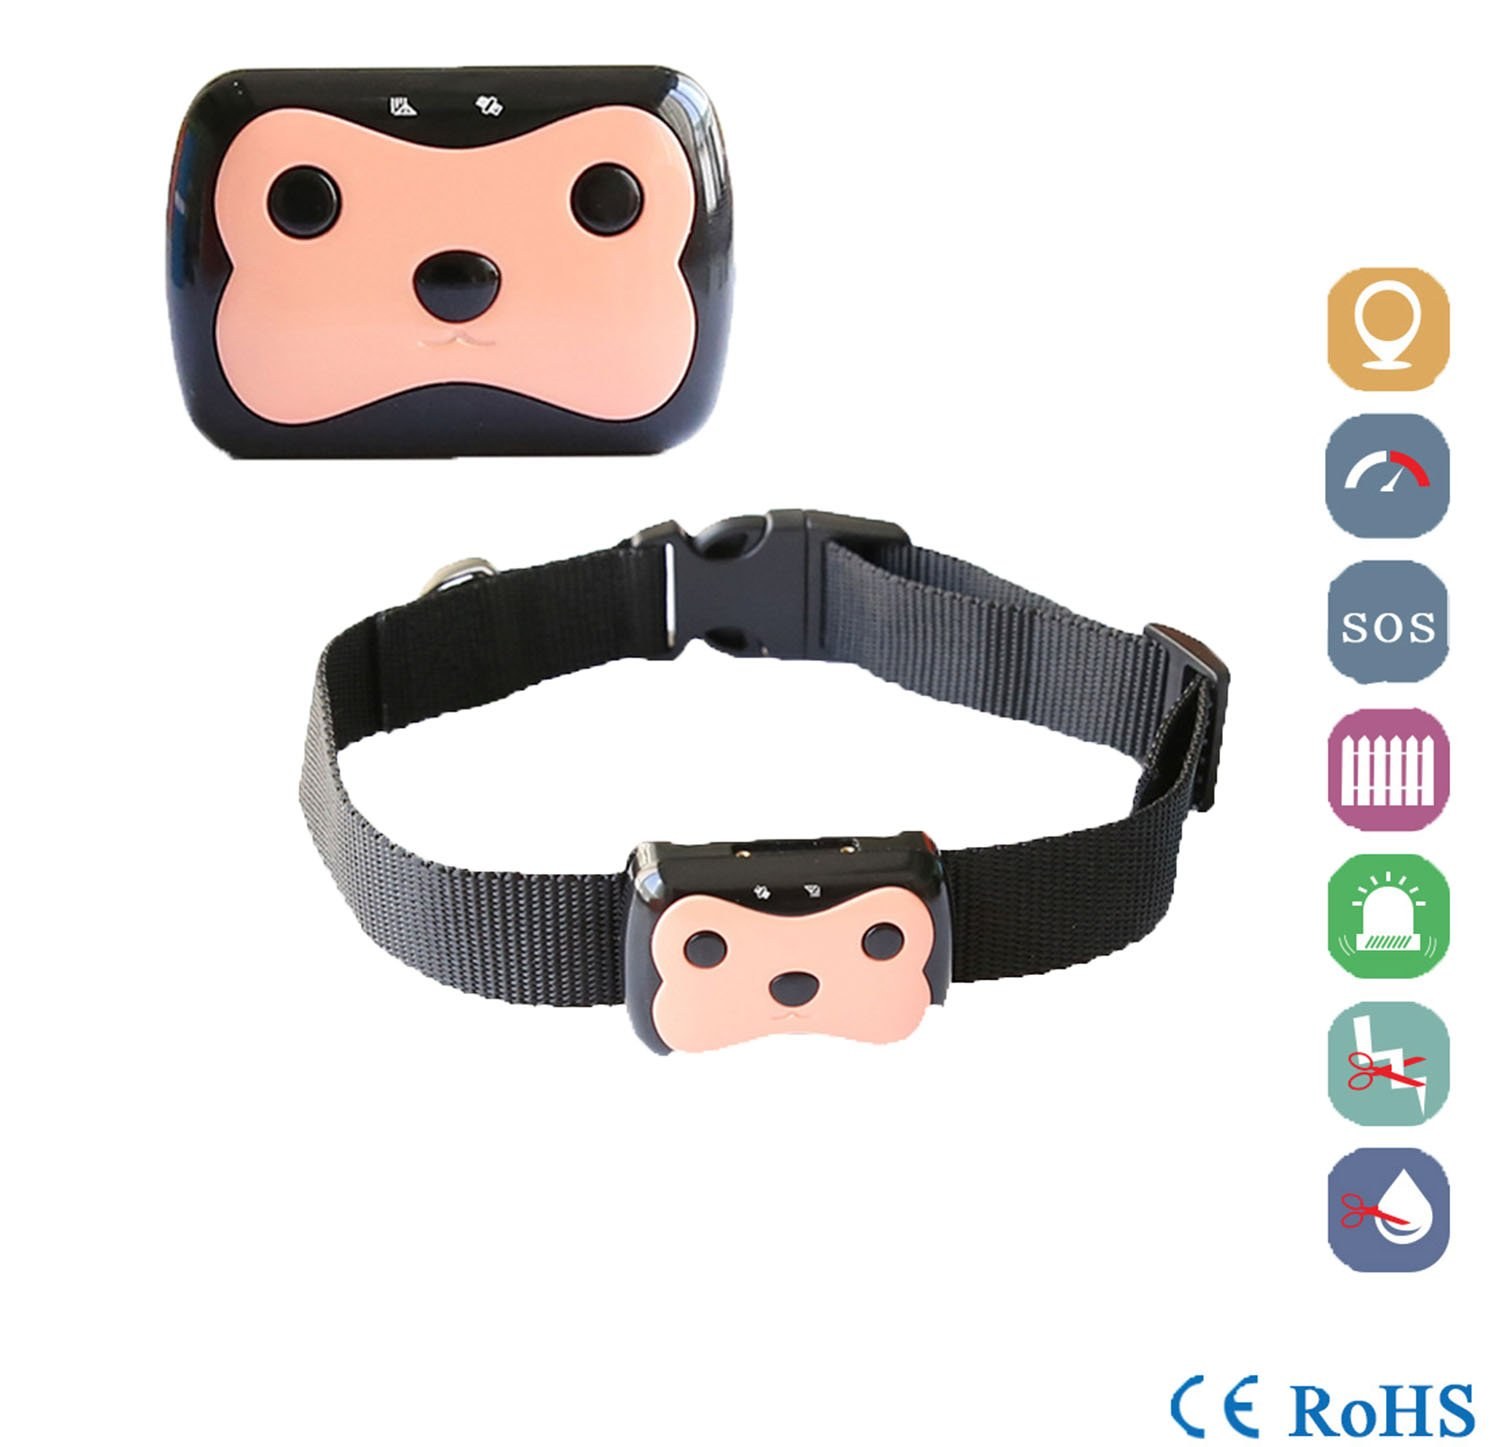 Real Time Pet Locator Gps Lbs Tracker Mini Smart Dogs Cats Collar Waterproof Anti-Lost Device Remote Safety Alarm,Black